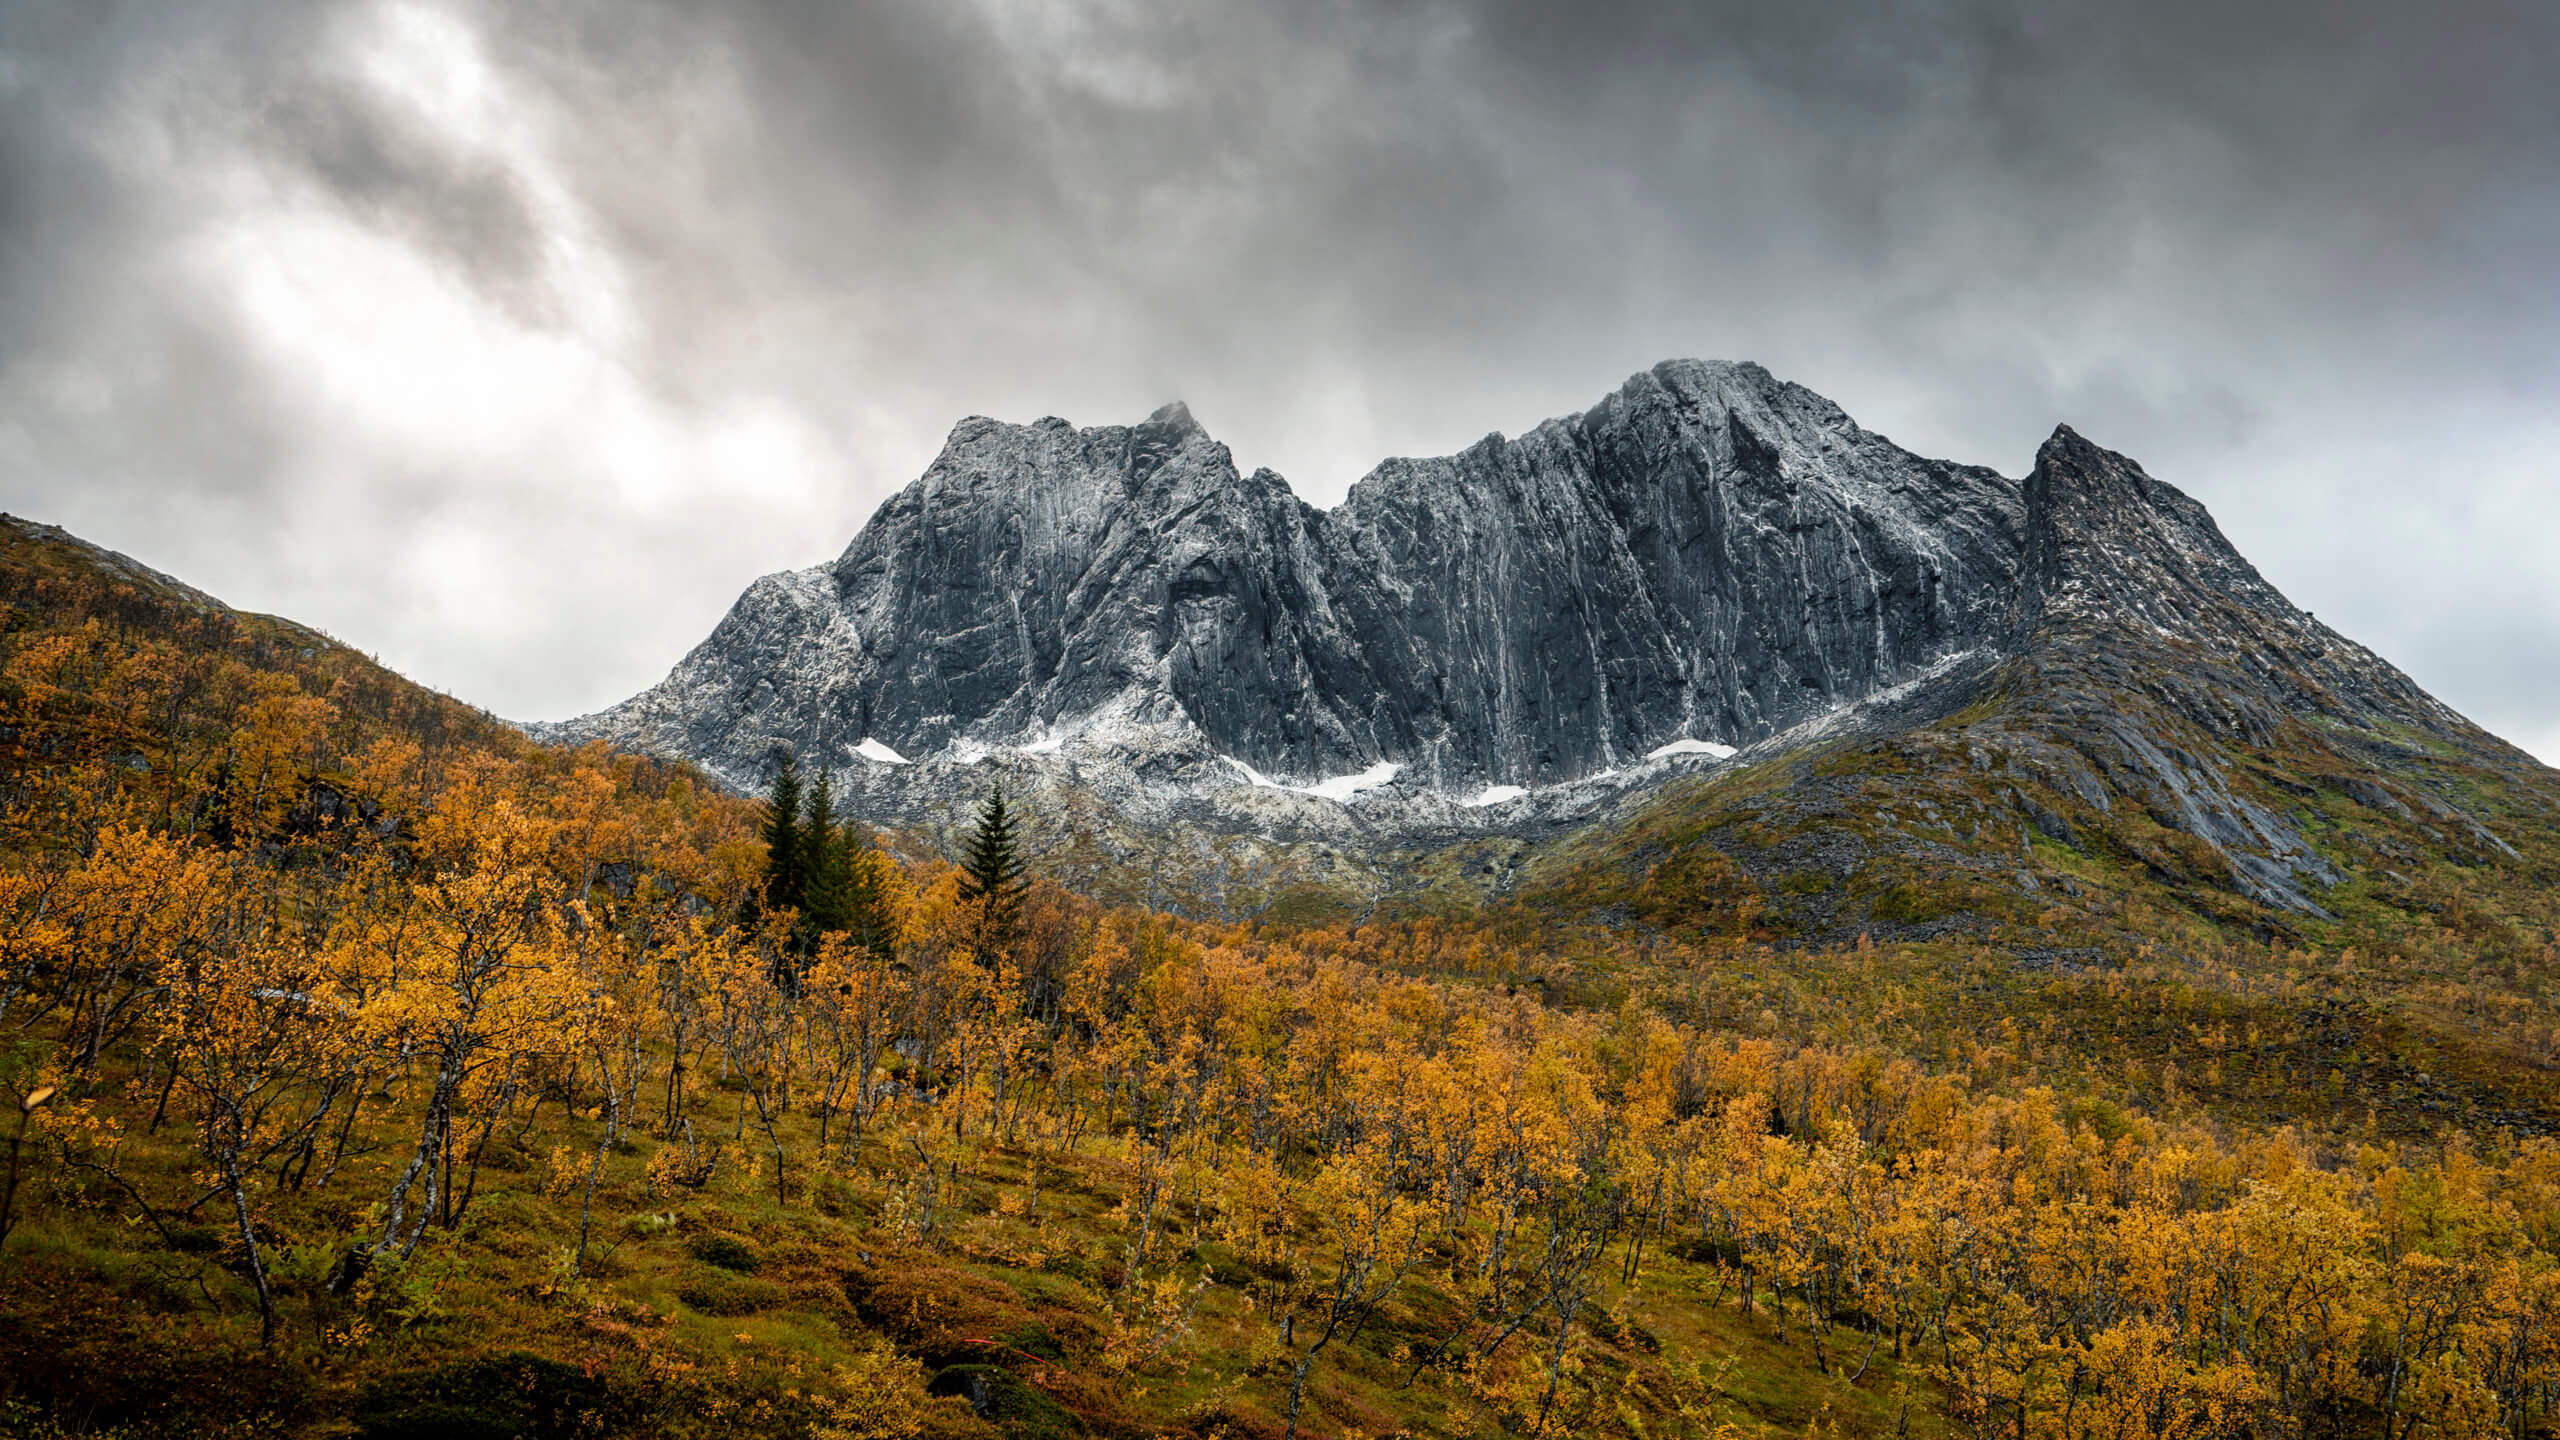 Mountains and autumn colors in Fjordgard Senja, by Joakim Jormelin